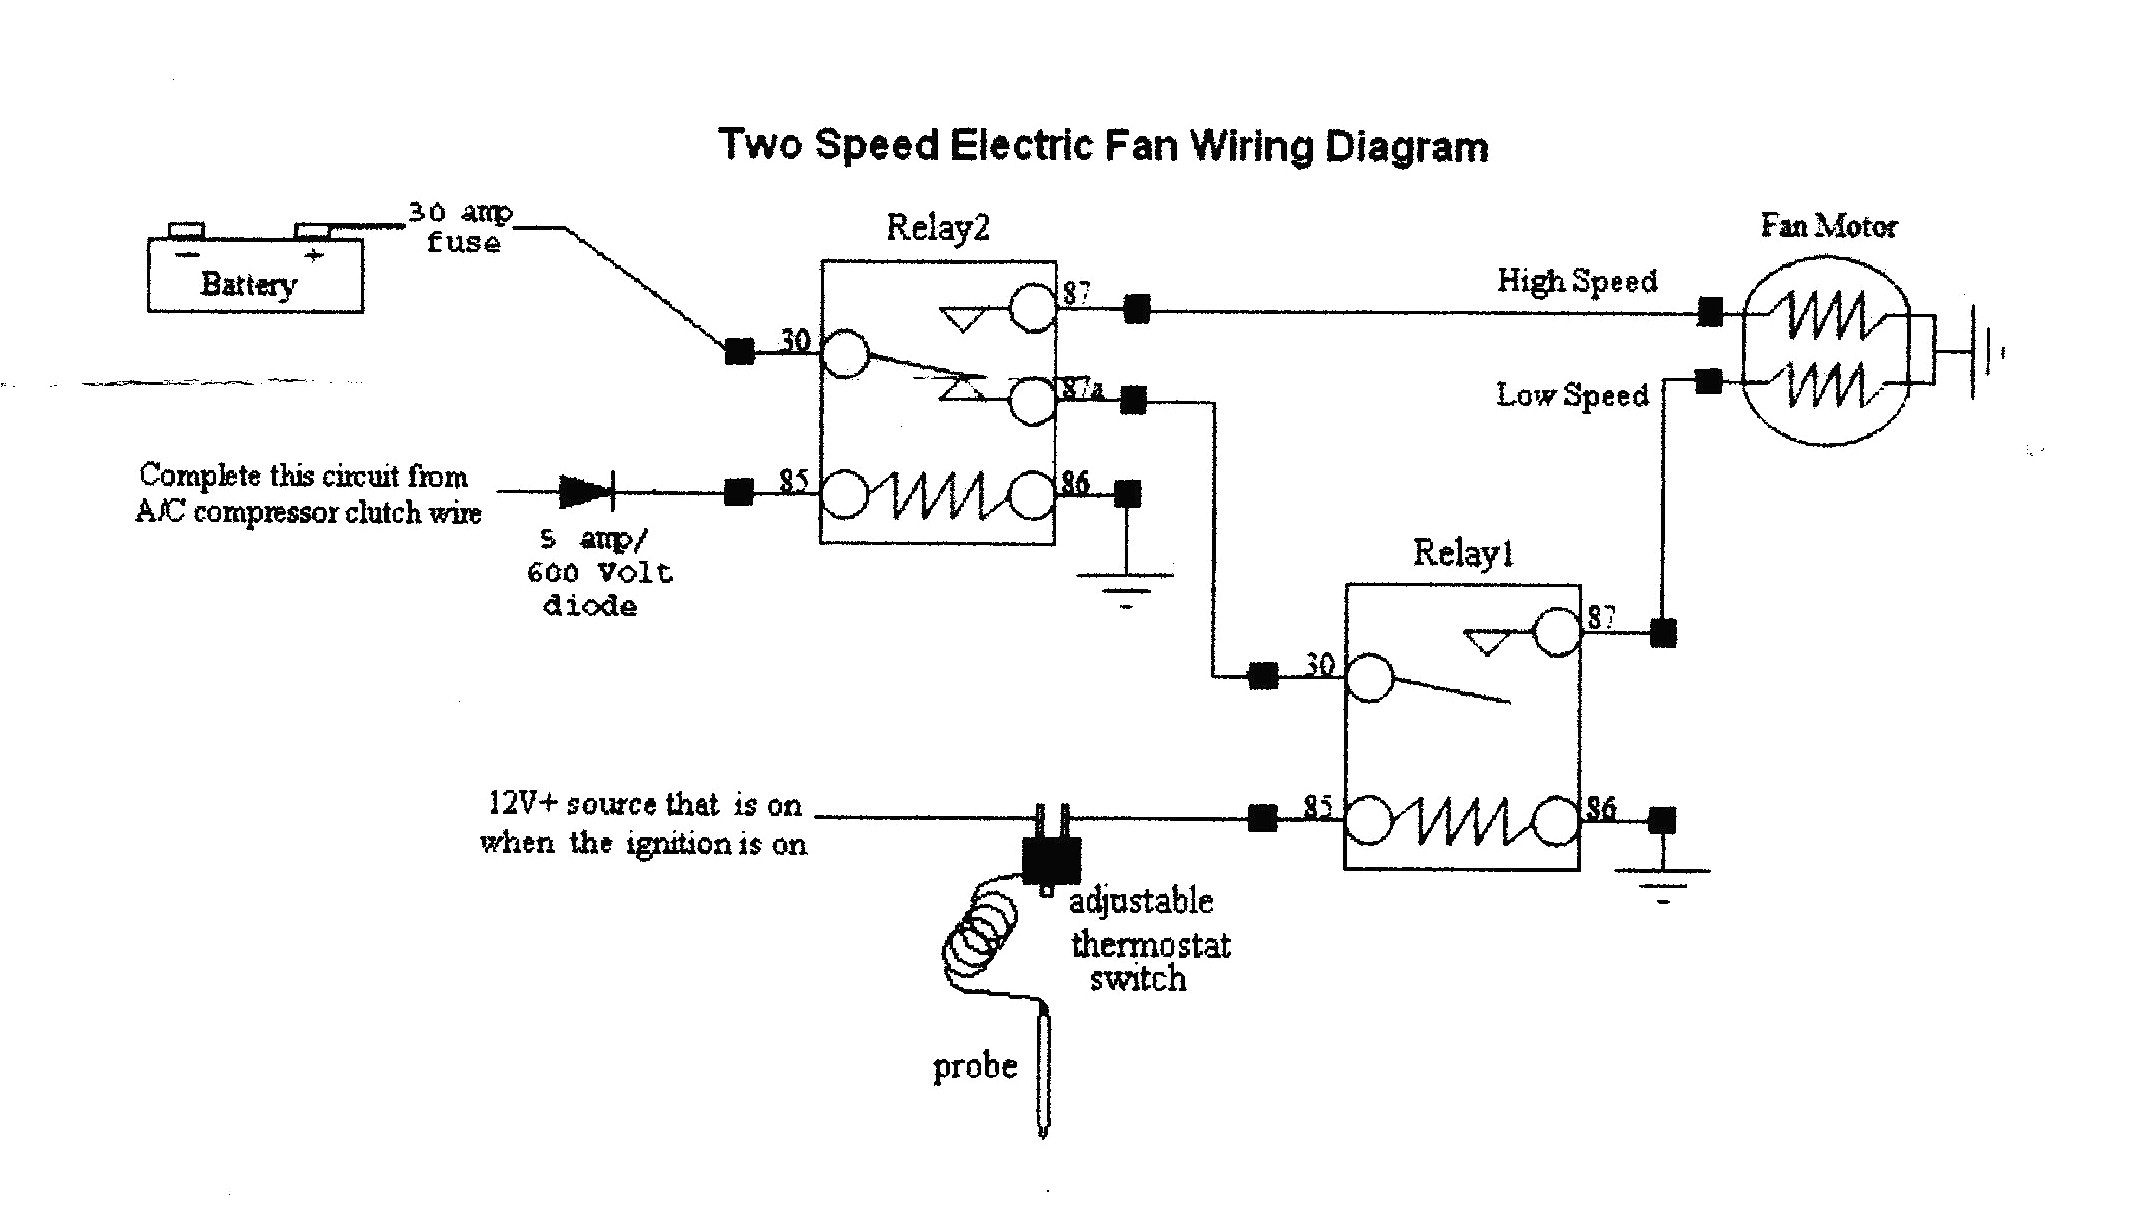 Electric Fan Wiring Diagram For